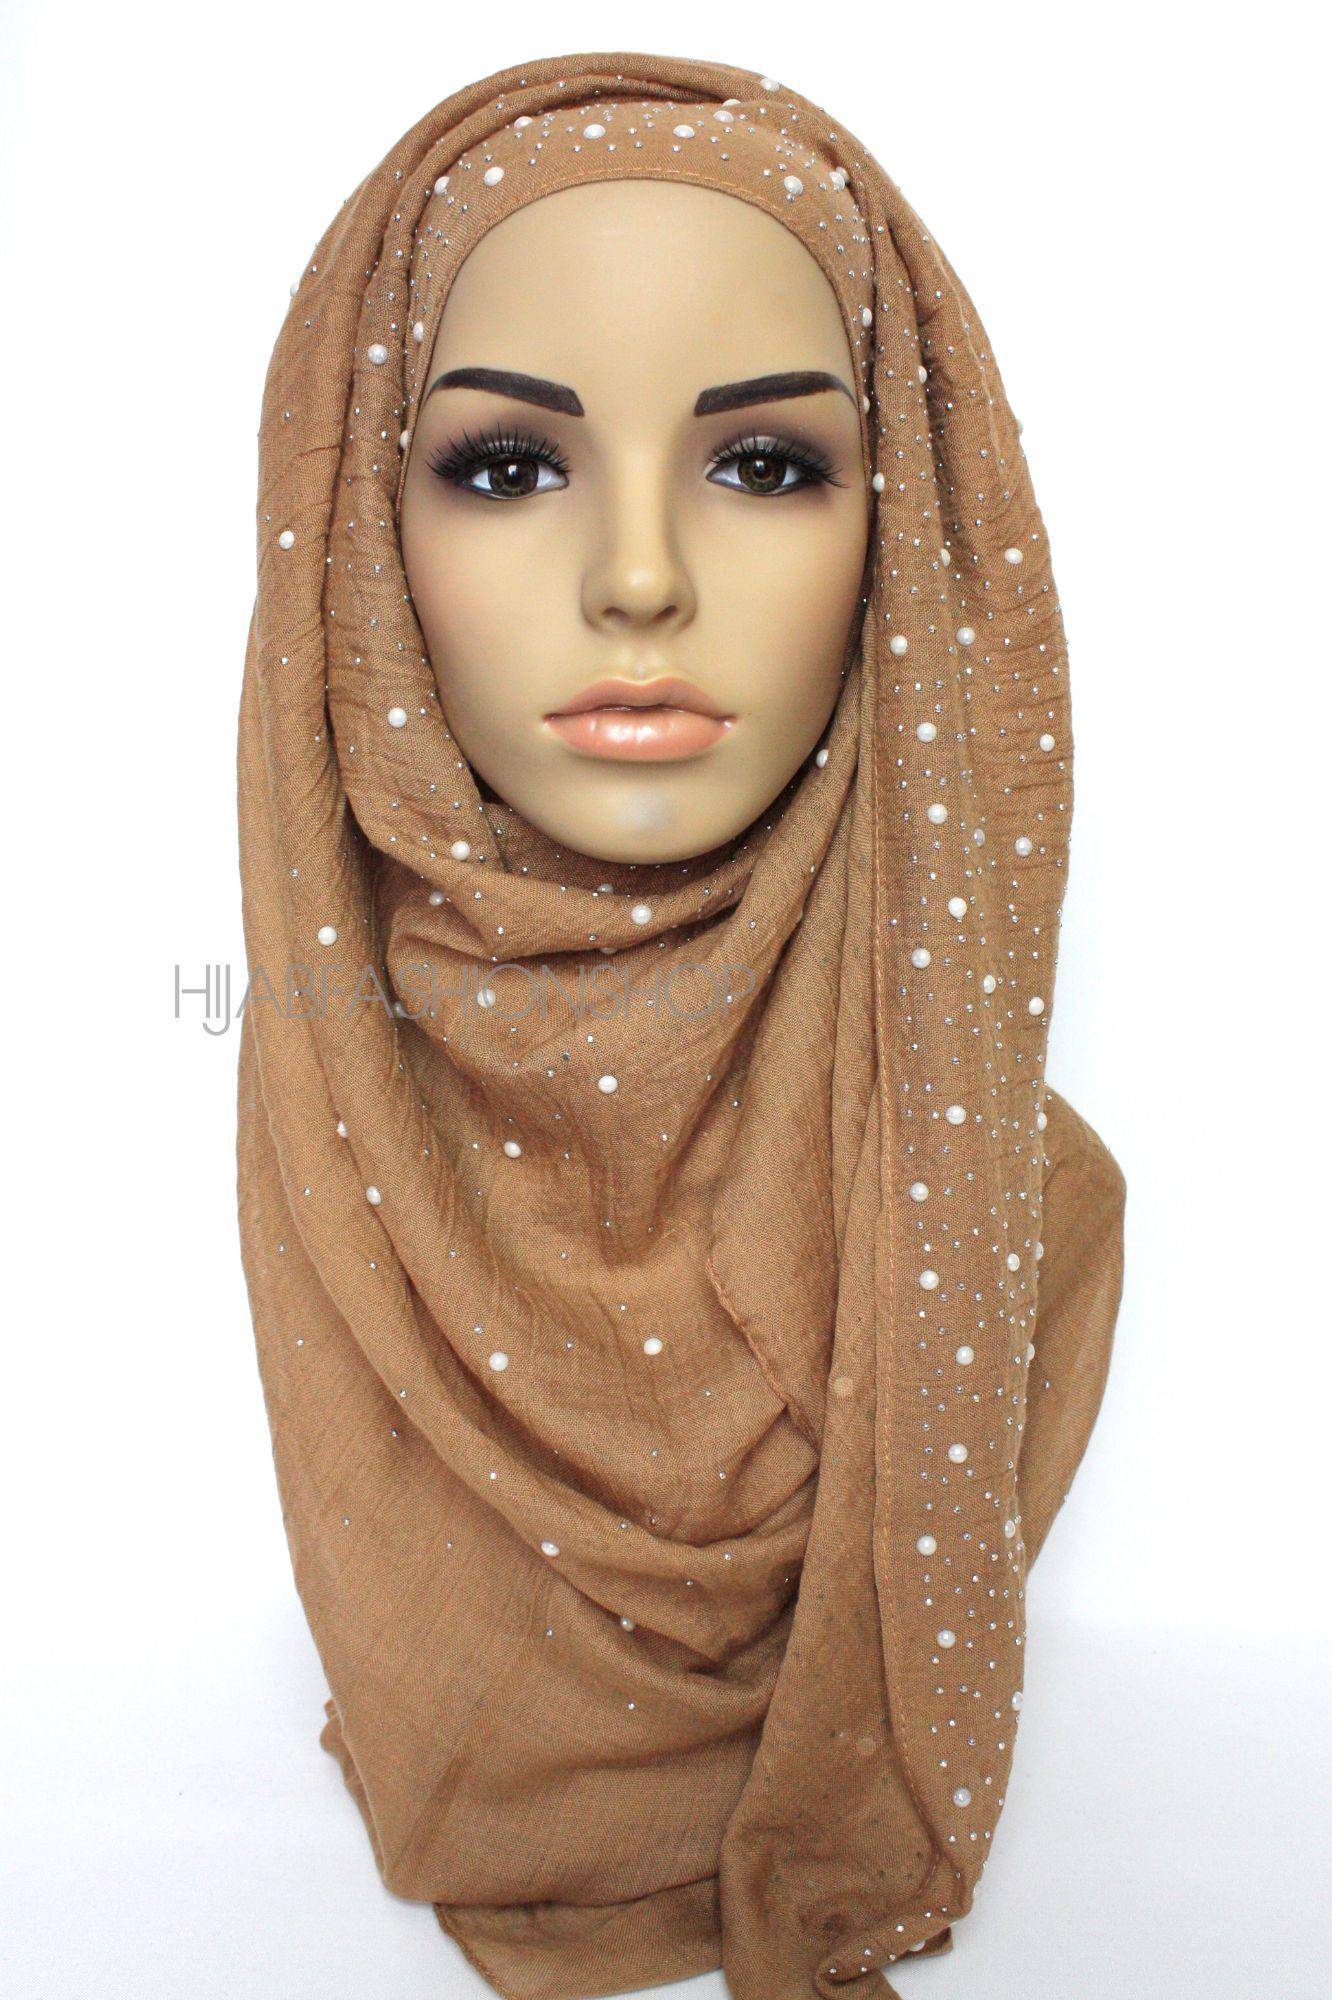 caramel hijab with silver studs and pearls